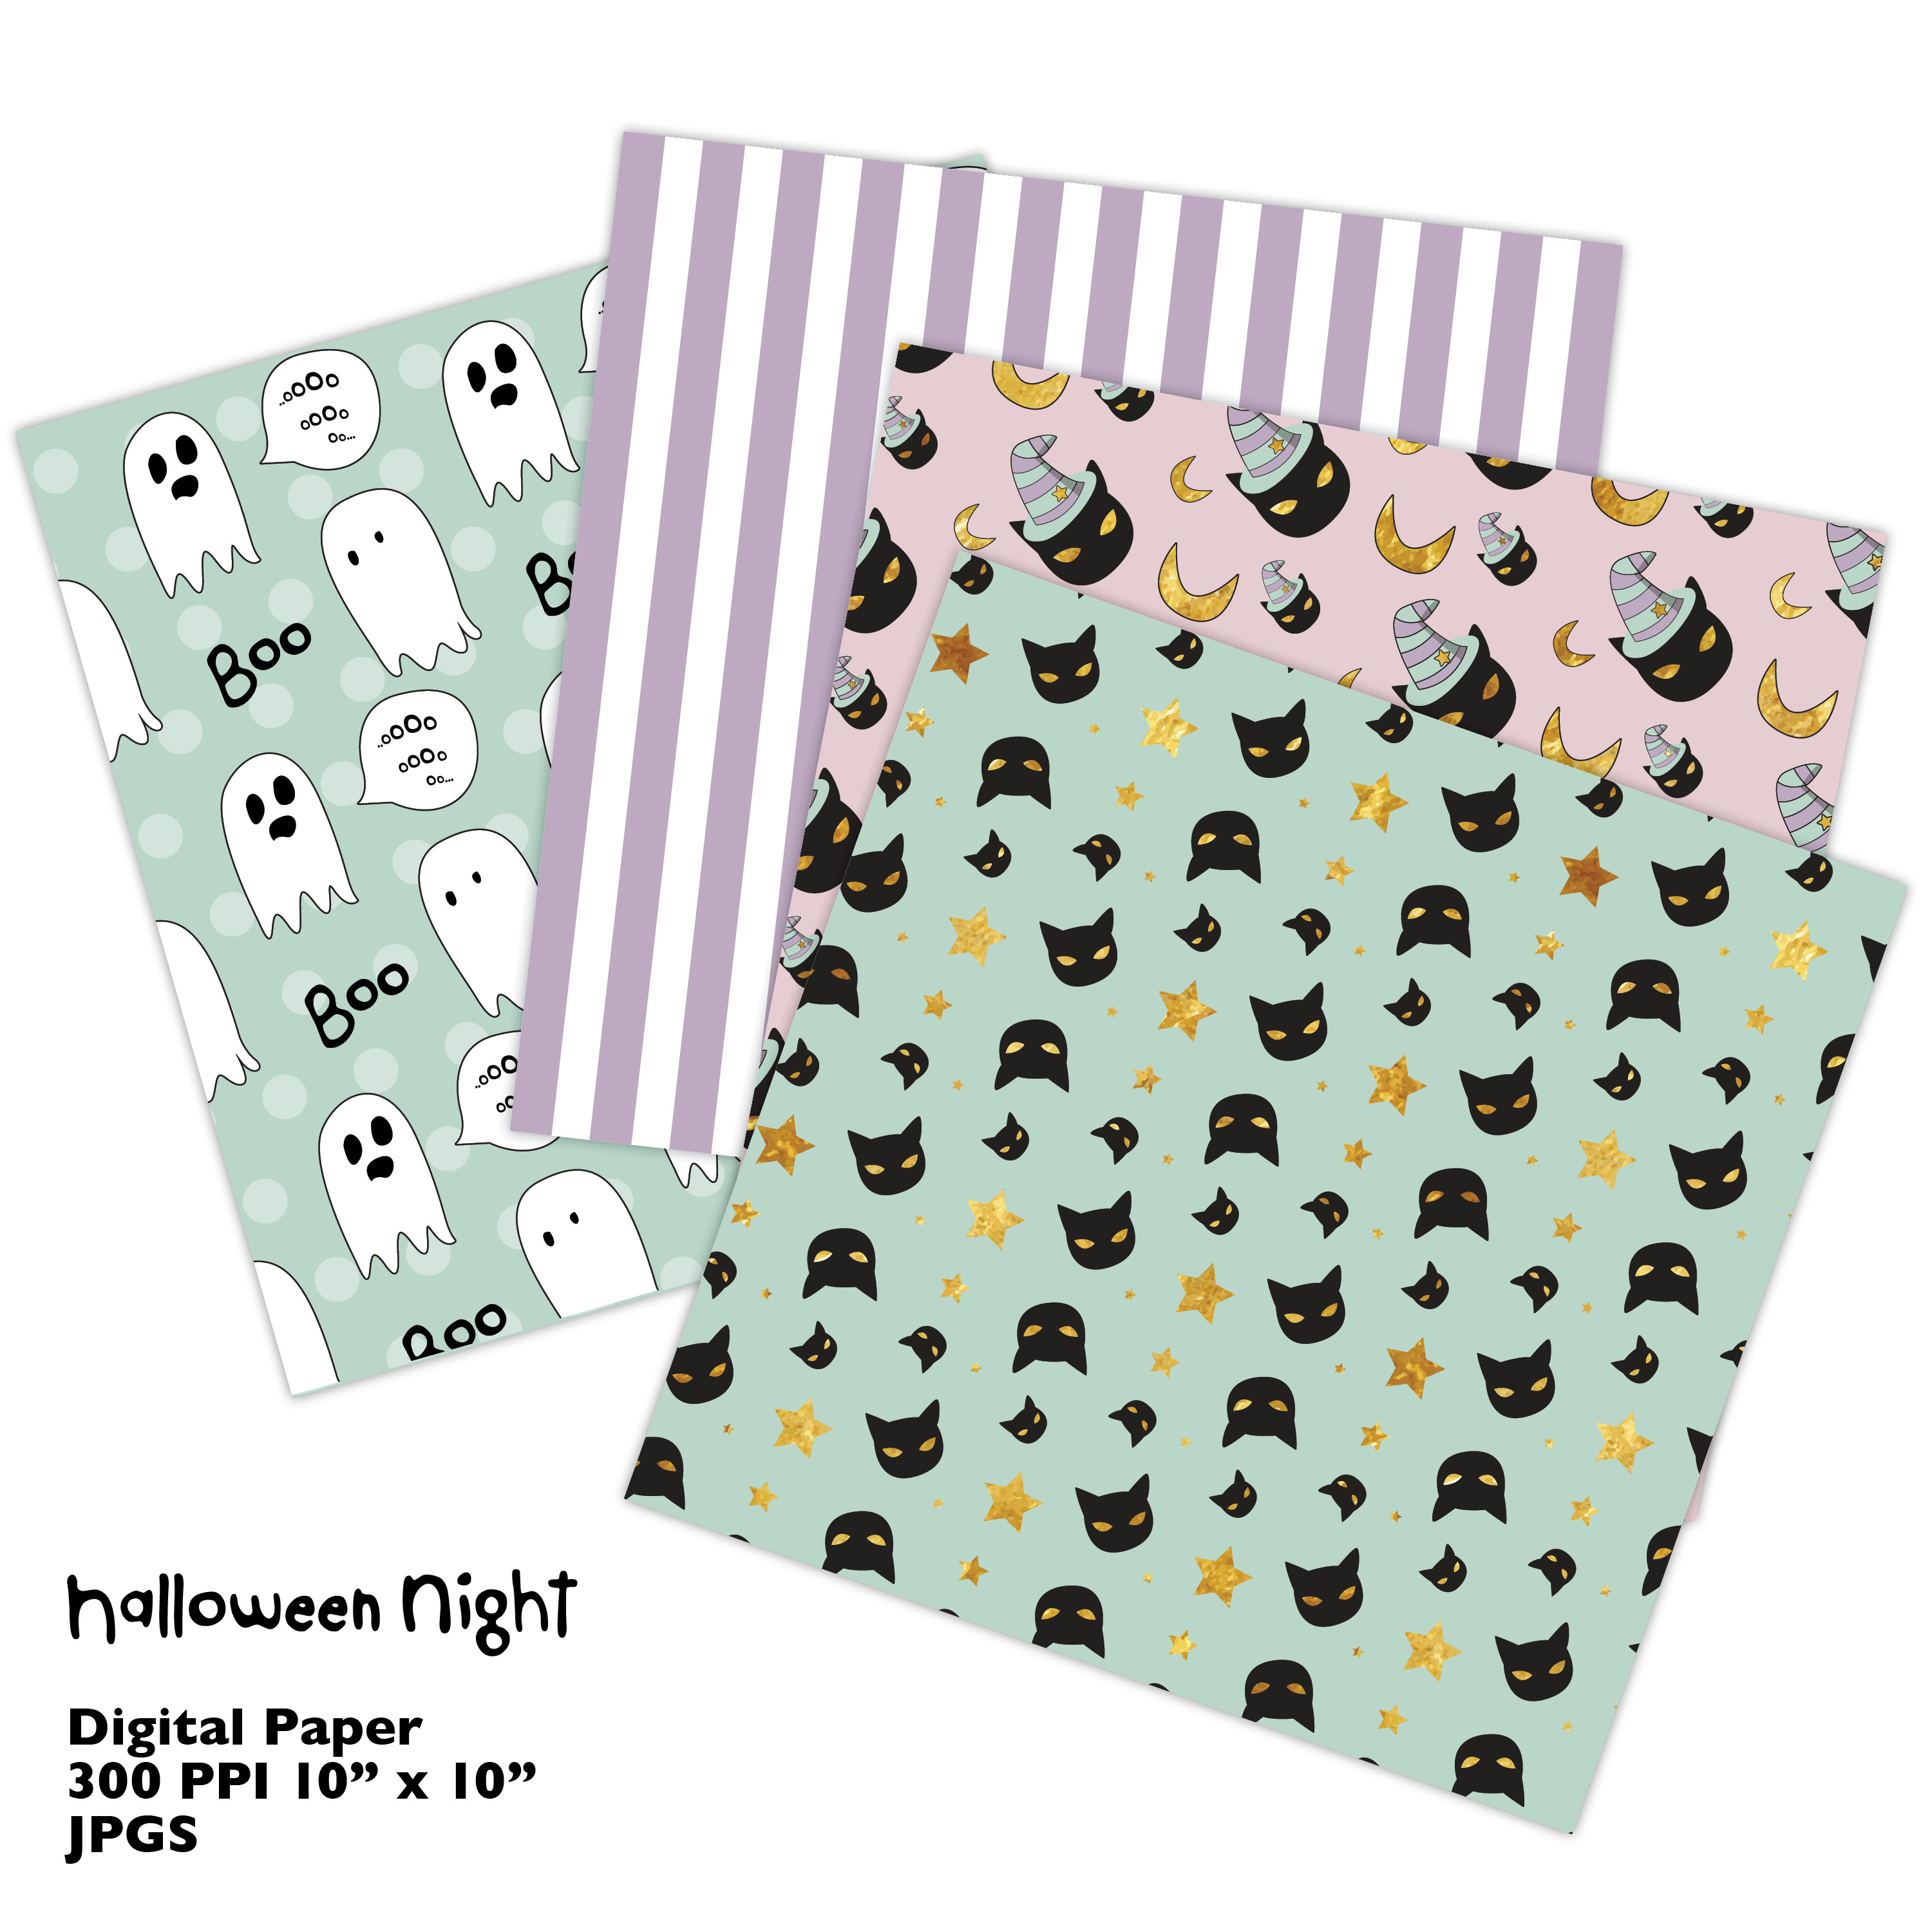 Hand Drawn Halloween Digital Paper in Pastel Colors example image 5